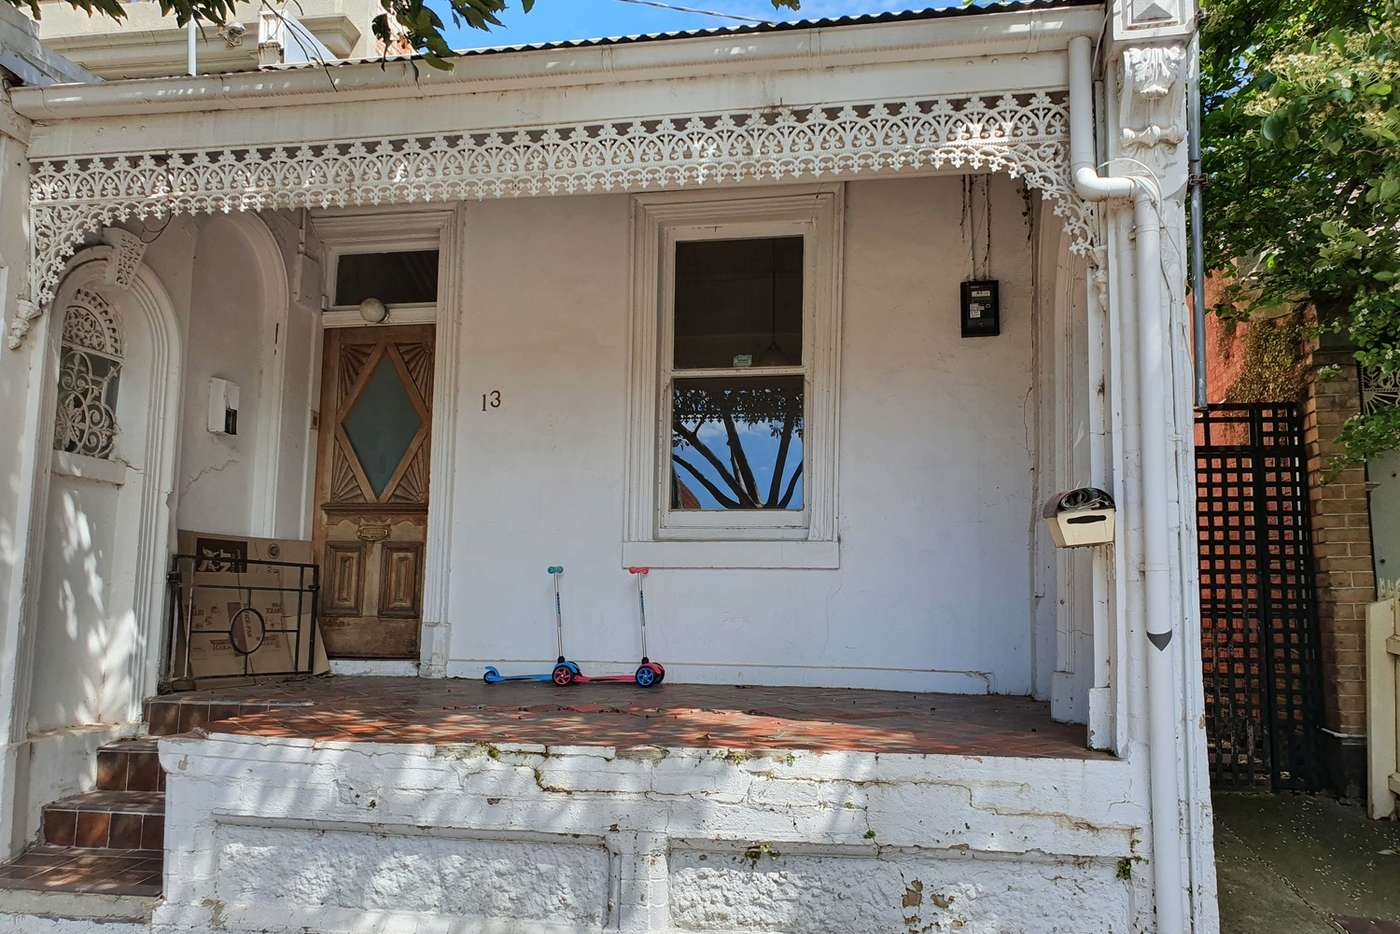 Main view of Homely house listing, 13 Curran Street, North Melbourne VIC 3051